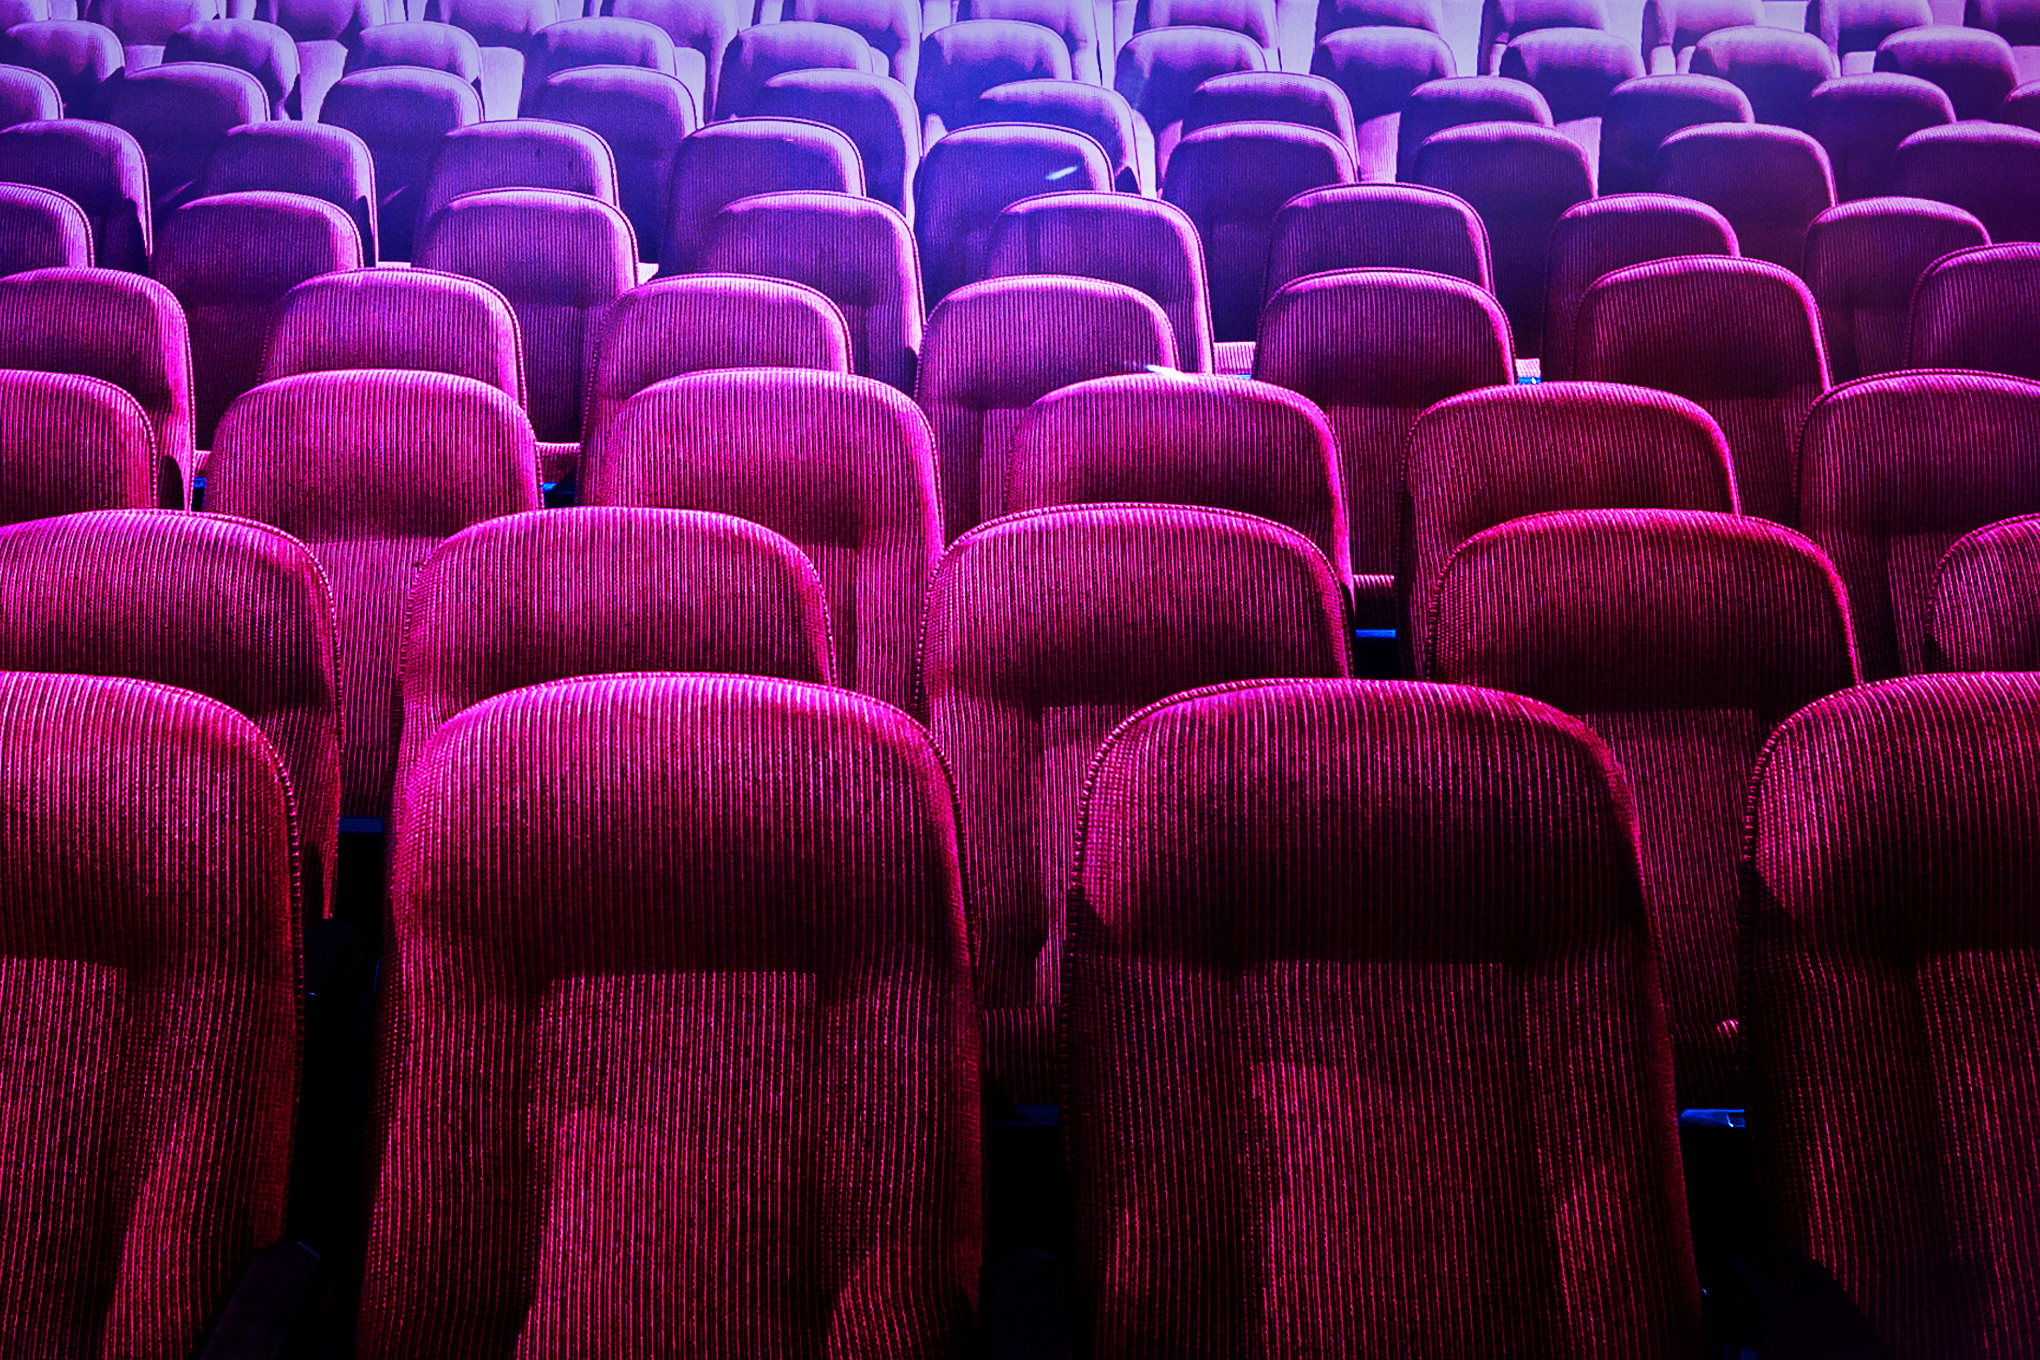 Rows of seats in a movie theater